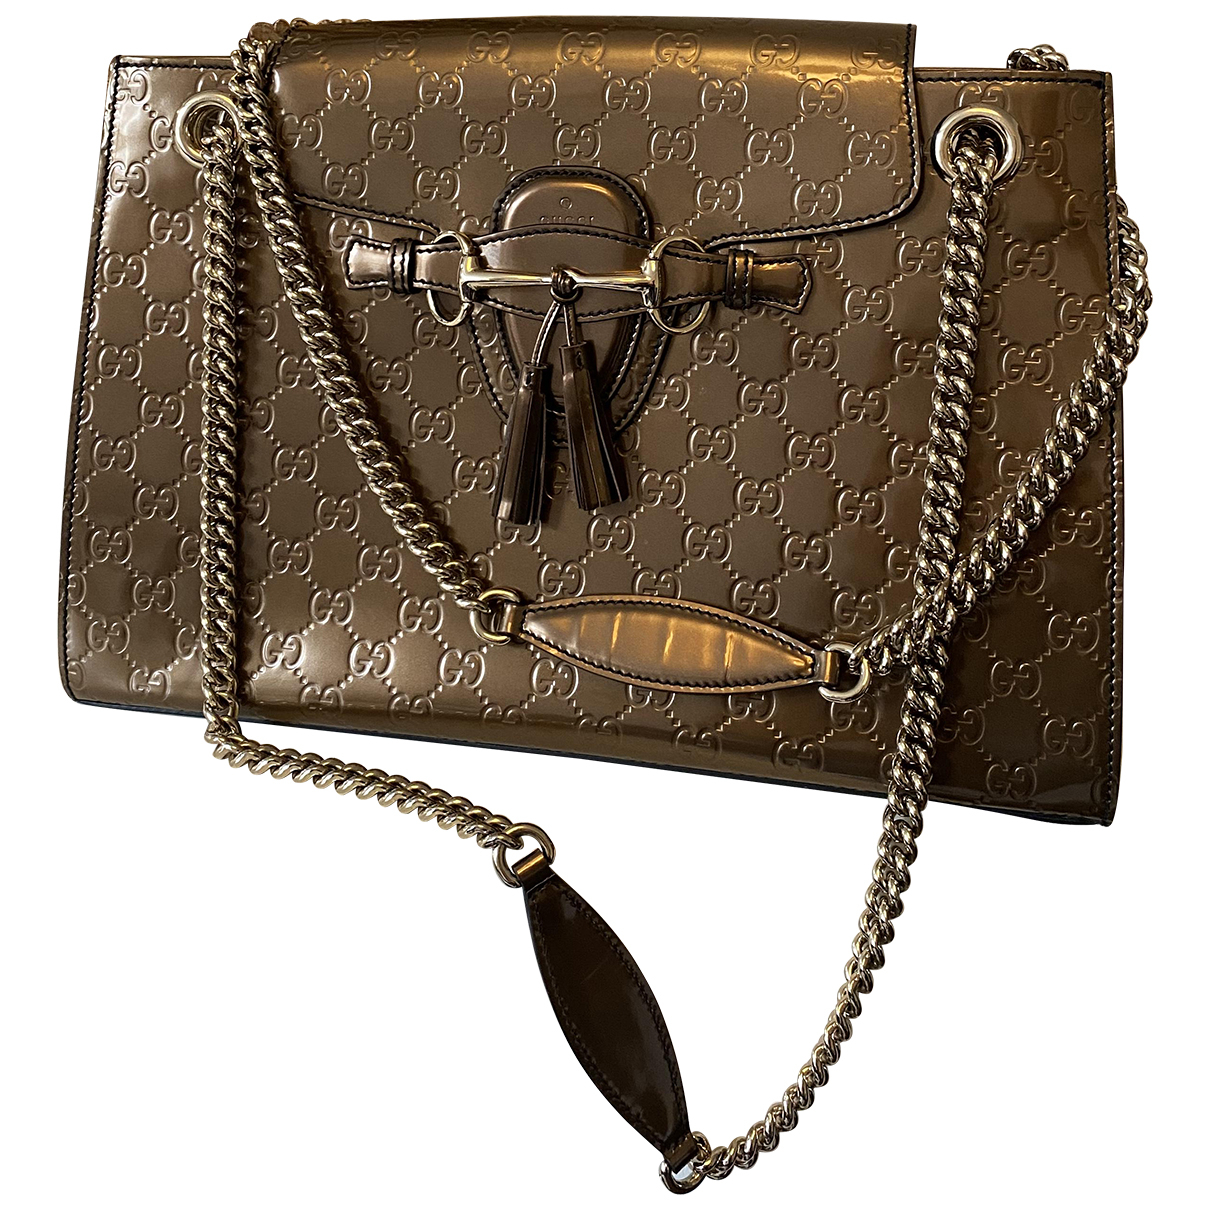 Gucci Emily Gold Patent leather handbag for Women N